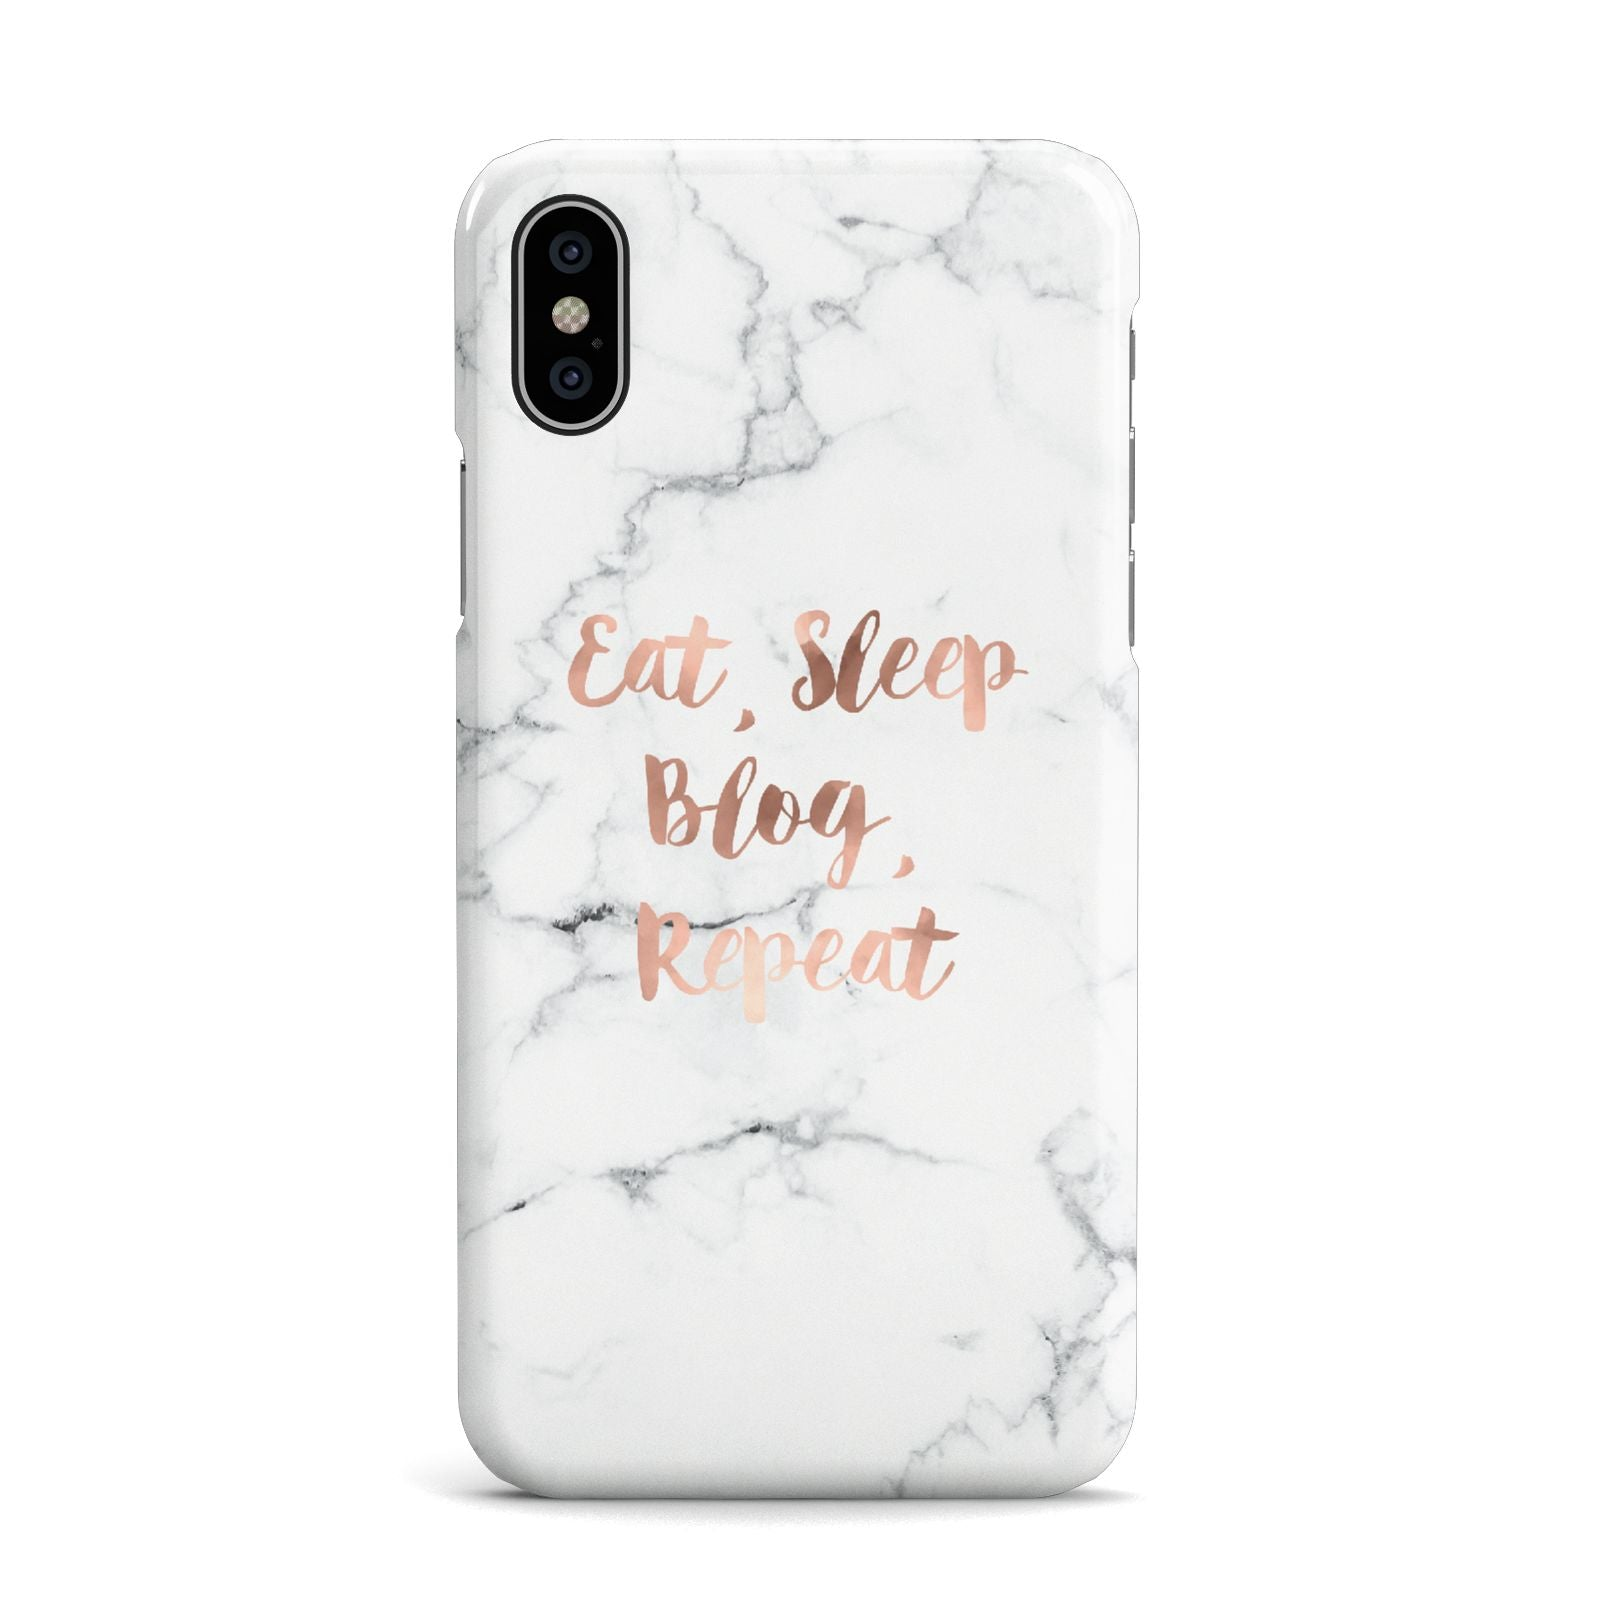 Eat Sleep Blog Repeat Marble Effect Apple iPhone X Case